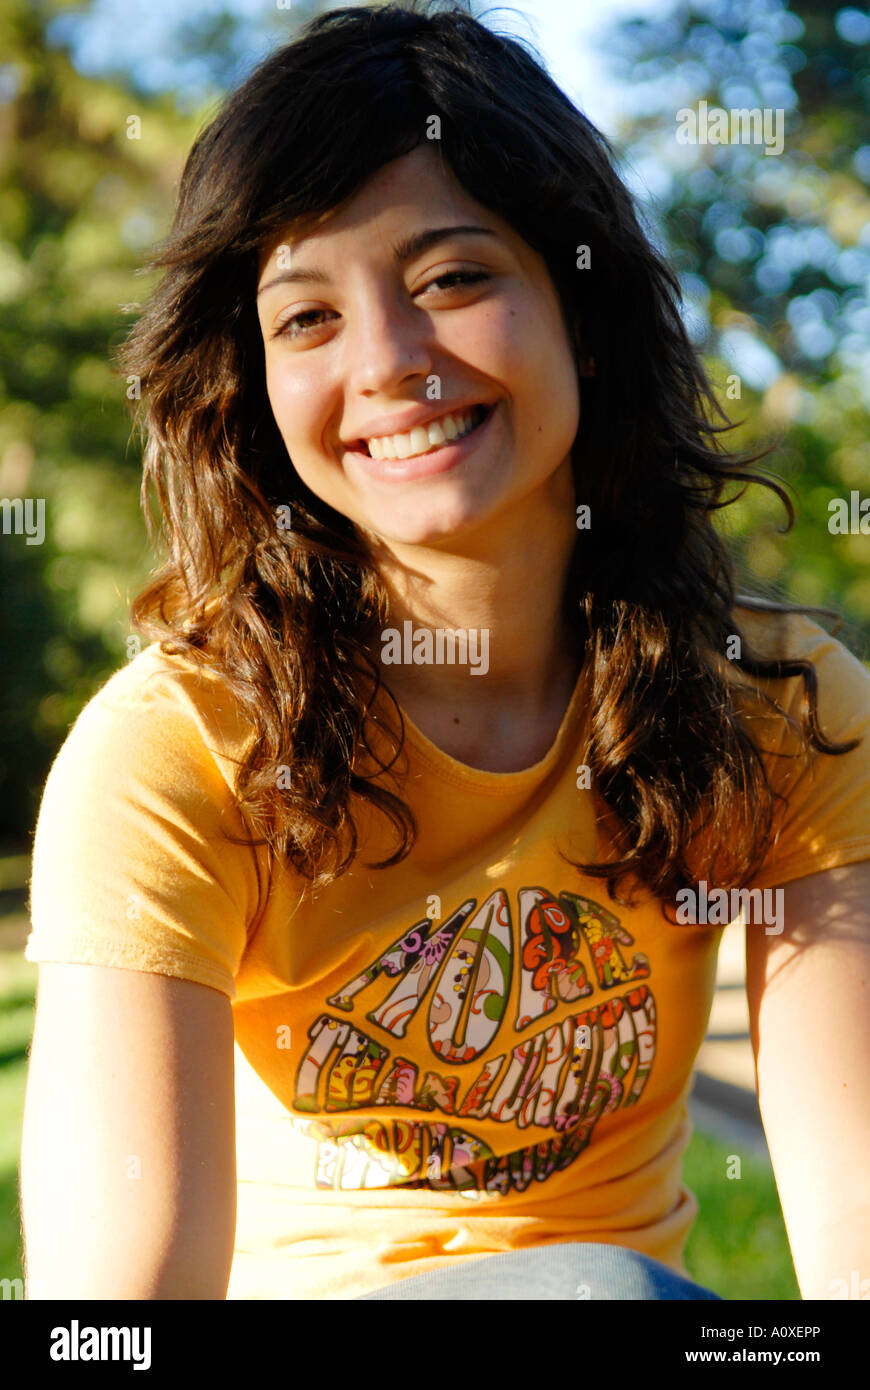 Portrait Of A Cute Spanish Teenager Stock Photo, Royalty